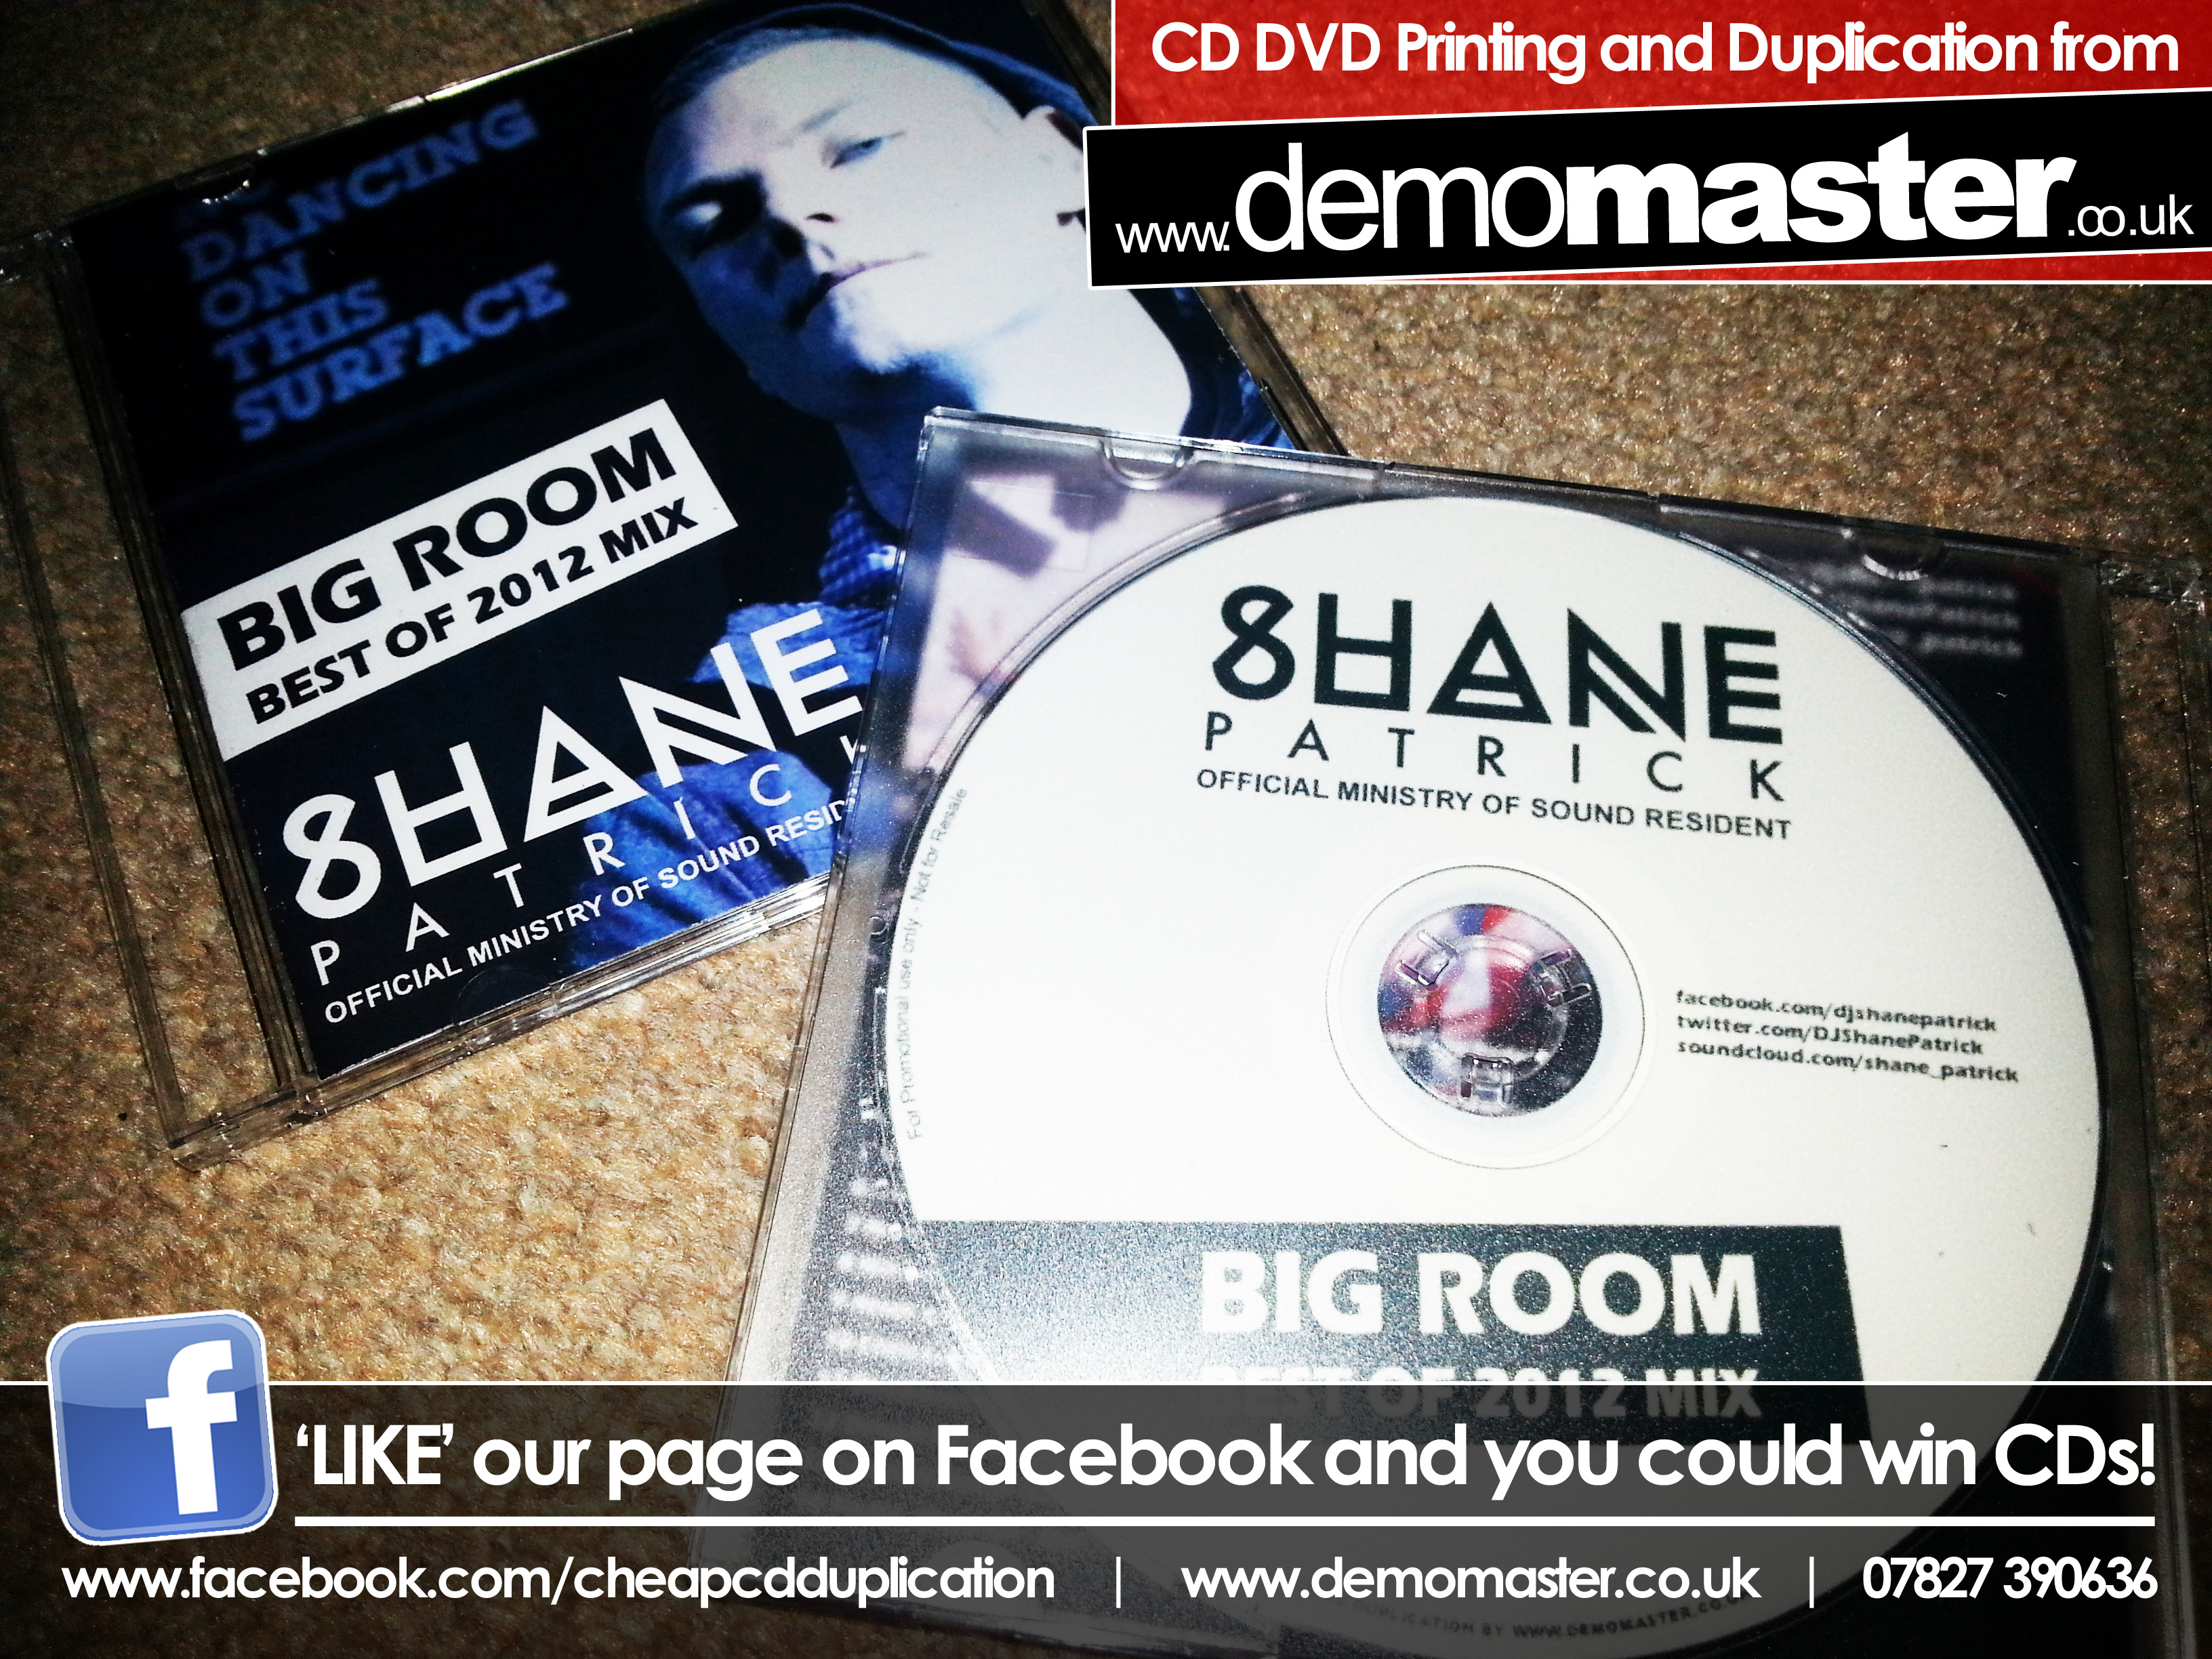 Shane Patrick Big Room Best of 2012